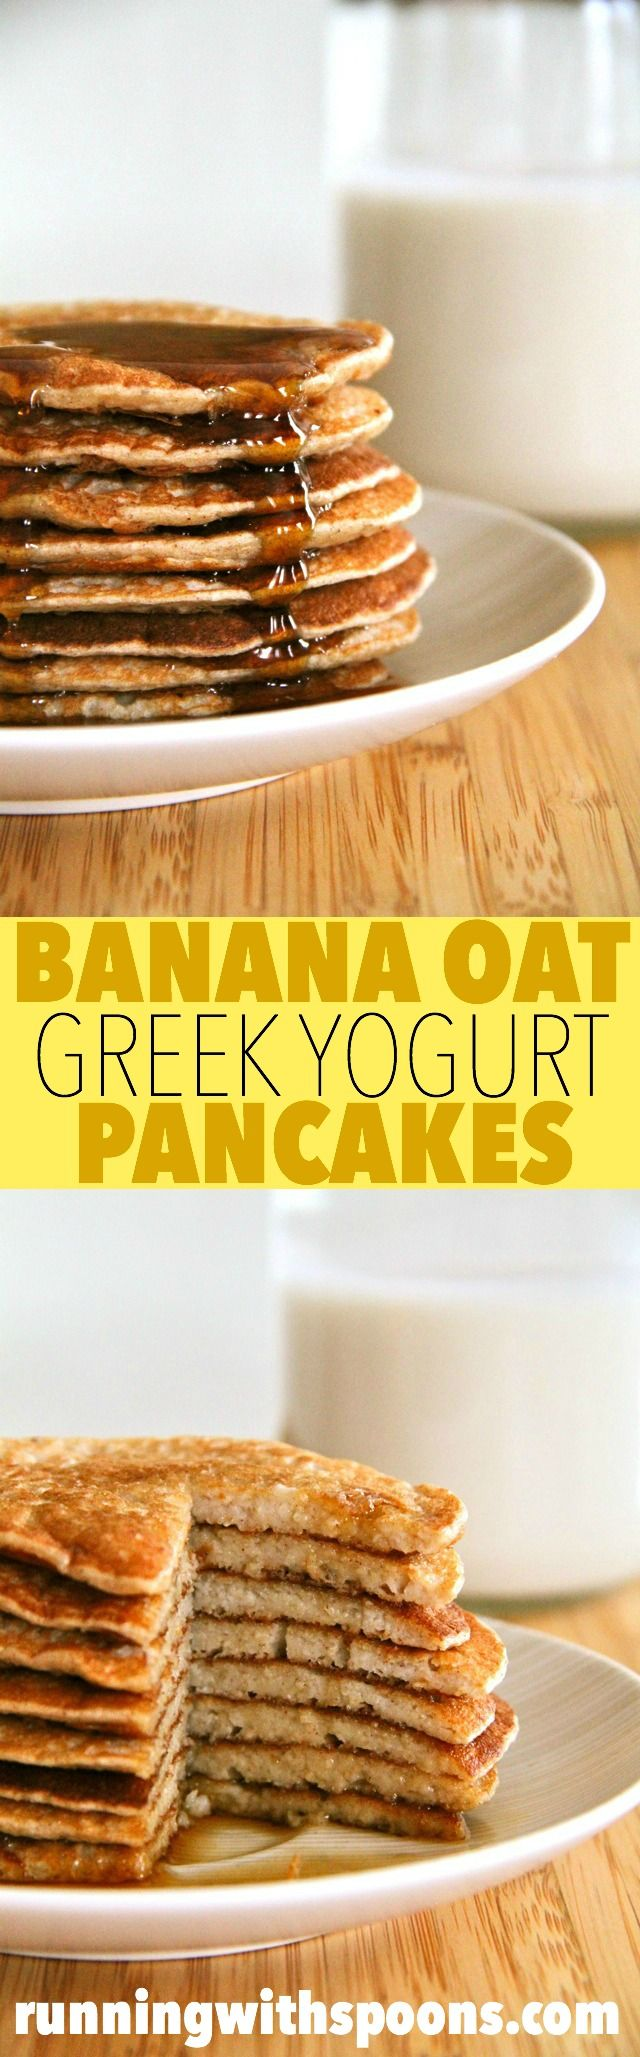 Banana Oat Greek Yogurt Pancakes: with under 300 calories and 20g of protein for the ENTIRE recipe, these pancakes are a great way to start your day | runningwithspoons.com